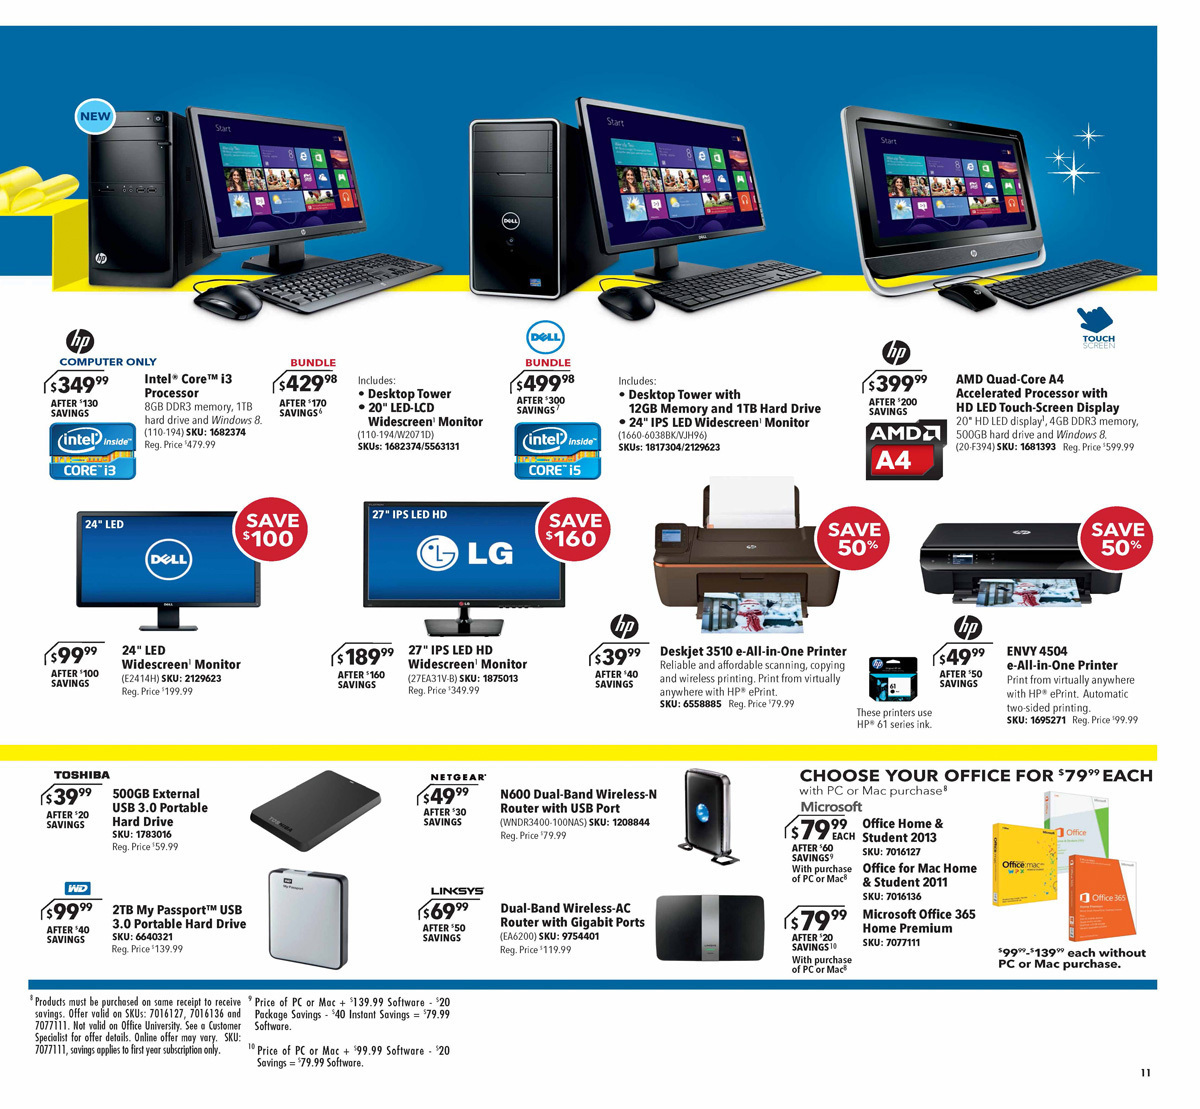 BestBuy_blackfriday2013_11